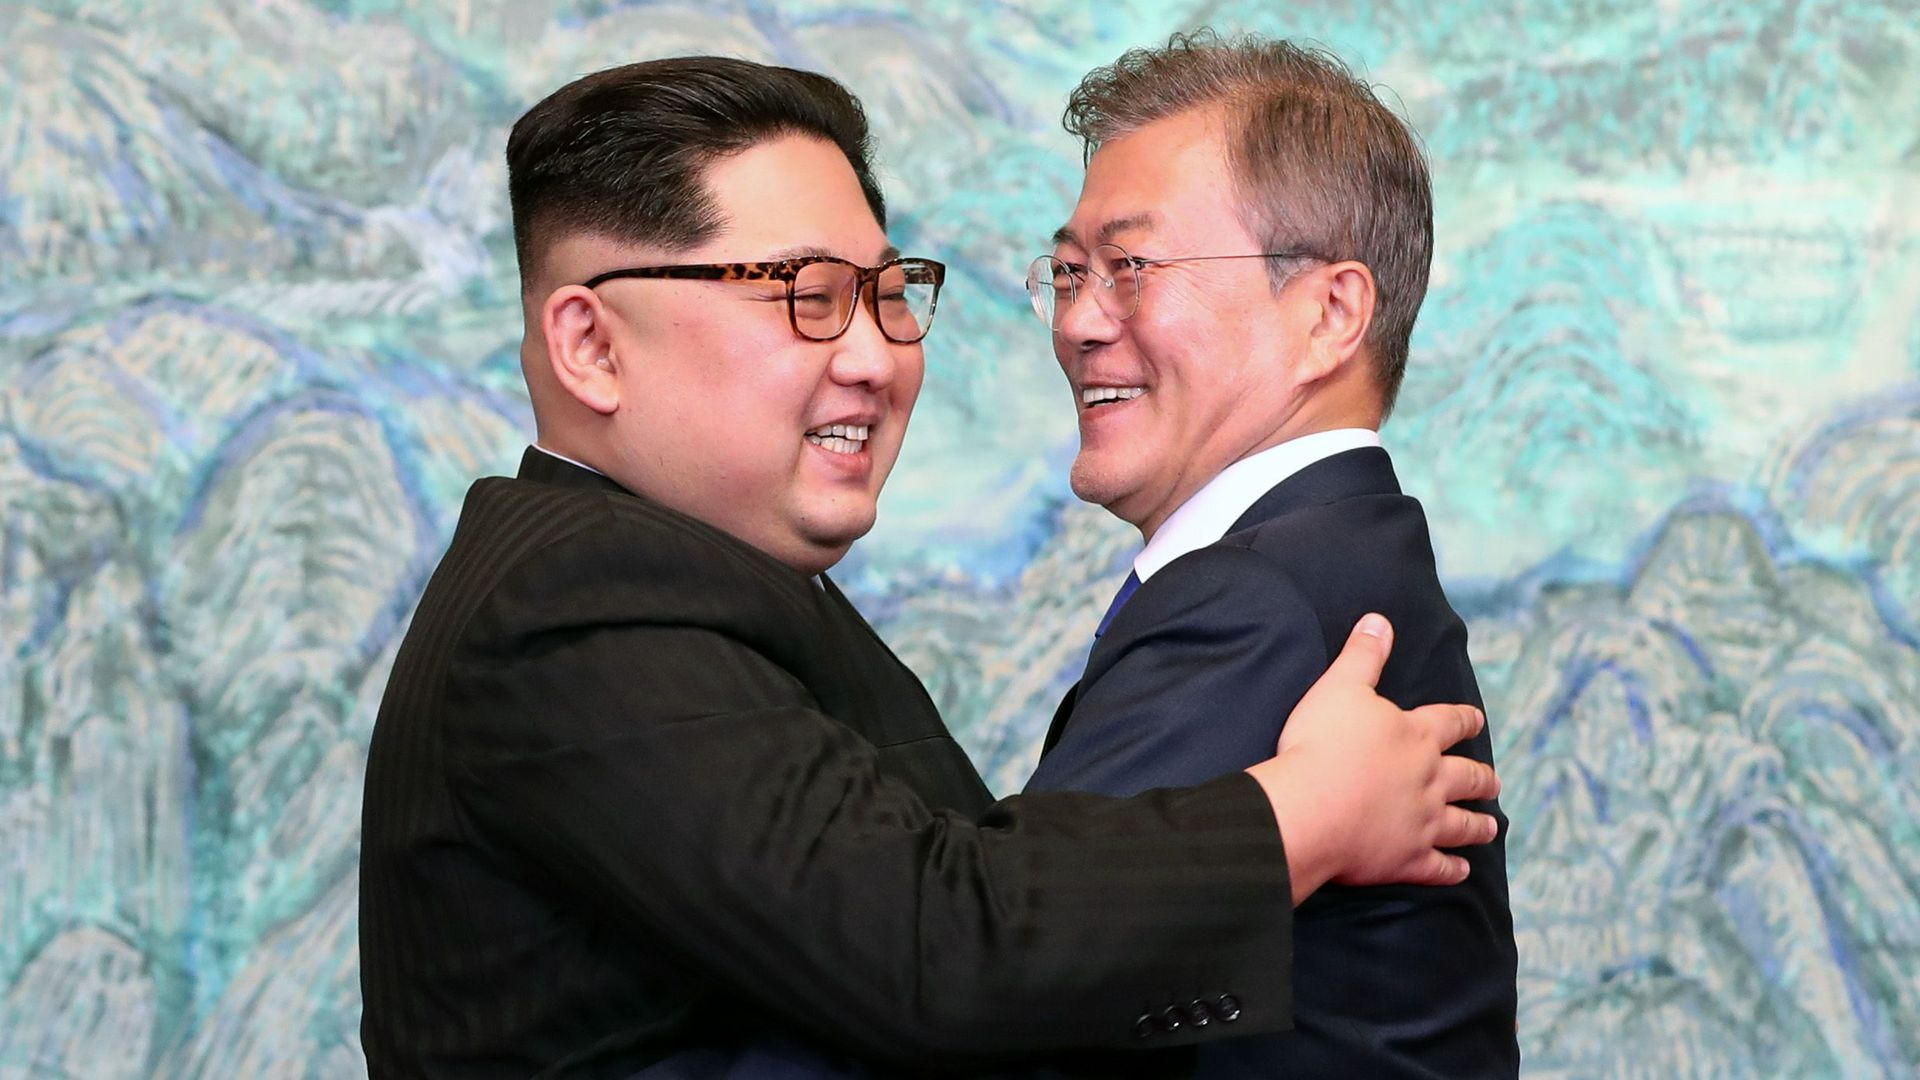 Kim Jong-un and Moon Jae-in embrace